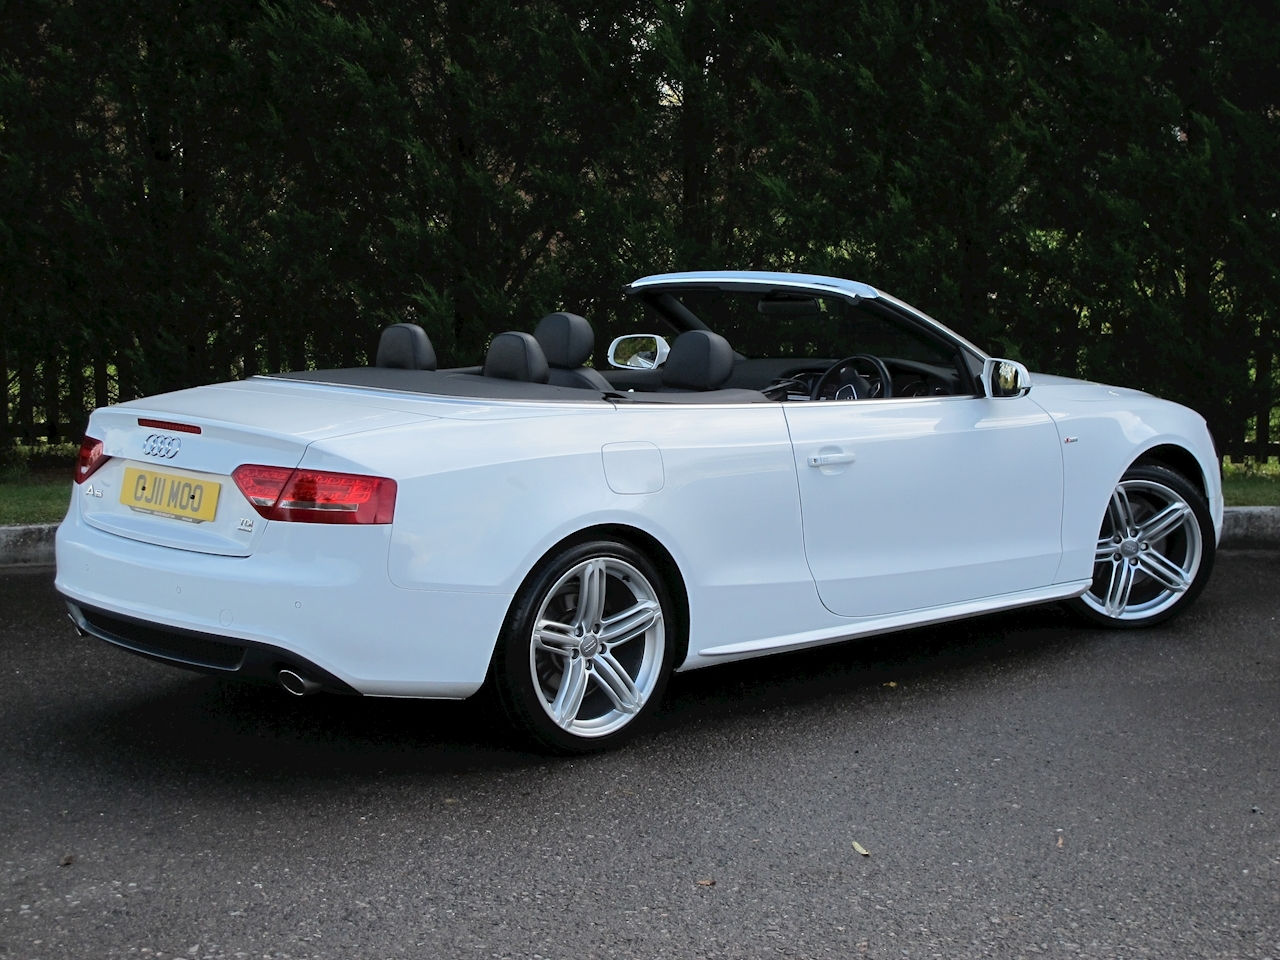 Audi A5 Cabriolet 3.0TDI S Line quattro S-Tronic 3.0 2dr Cabriolet S Tronic Diesel